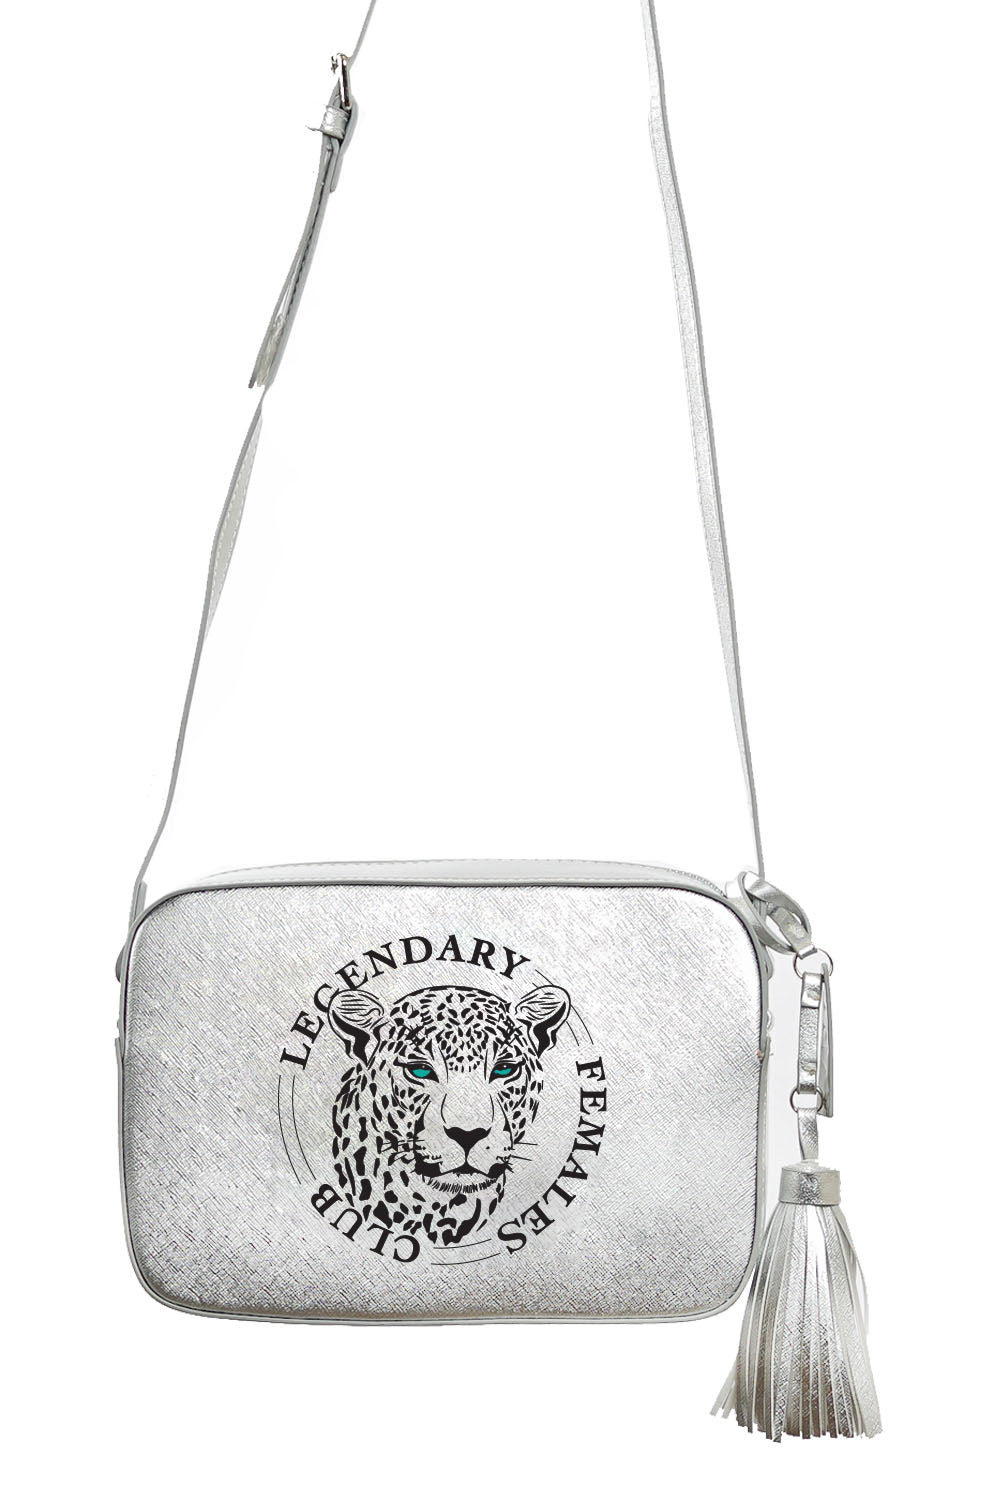 VEGAN CROSSBODY BAG - Legendary Females Club